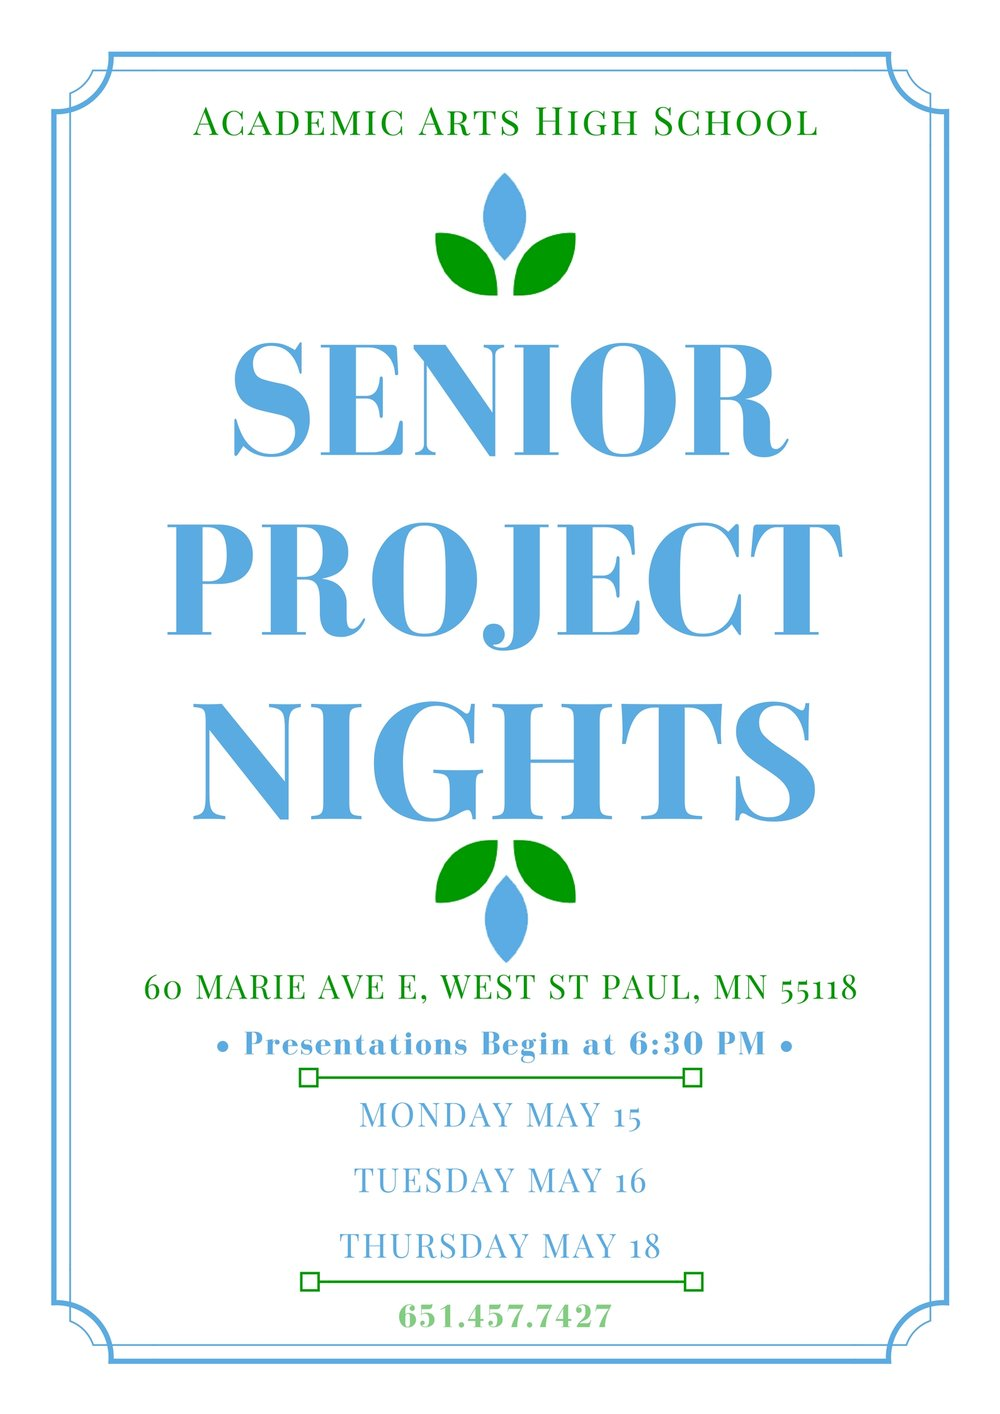 - Senior Presentation Nights Monday, May 15th 6:30-9:00pmTuesday, May 16th 6:30-8:30pmThursday, May 18th 6:30-8:30pm